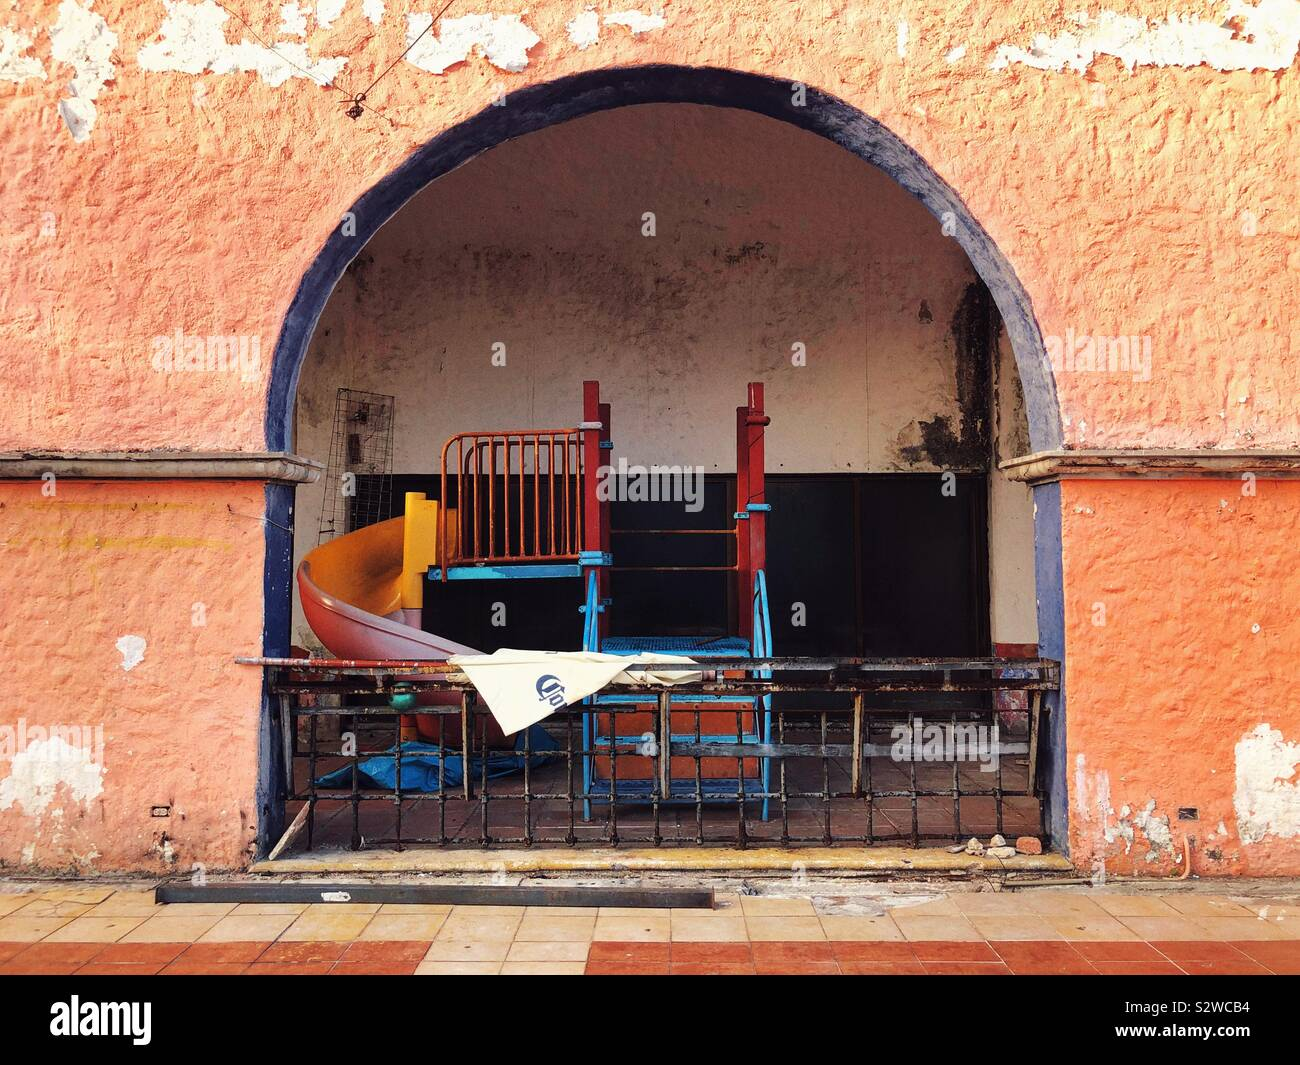 Abandoned property in Cancun, Mexico Stock Photo